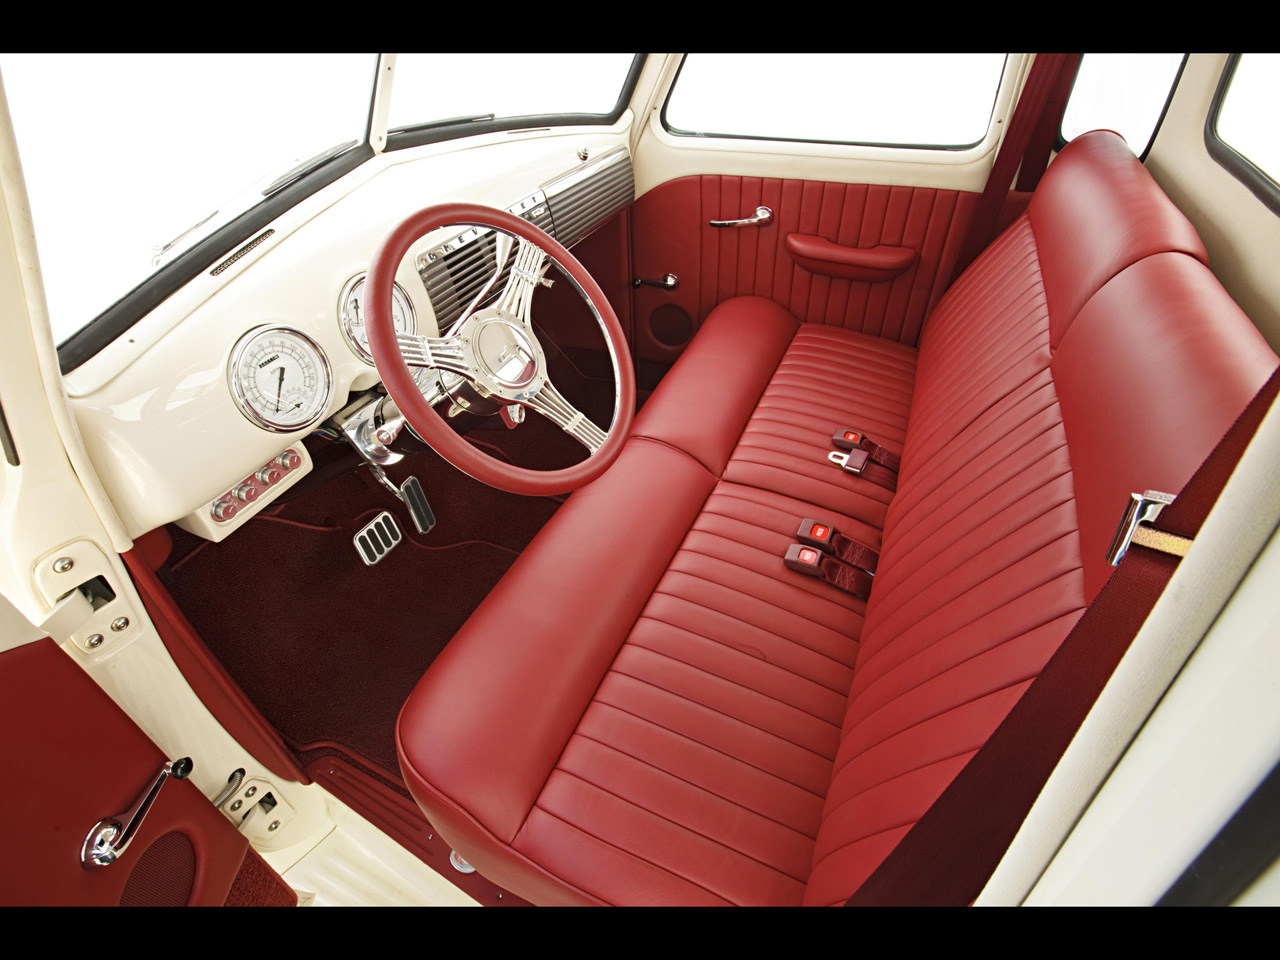 1940 Ford Pickup Interior Kit Decorating Of Your House 1955 F100 Art Director And Hot Rodder 1949 Chevrolet